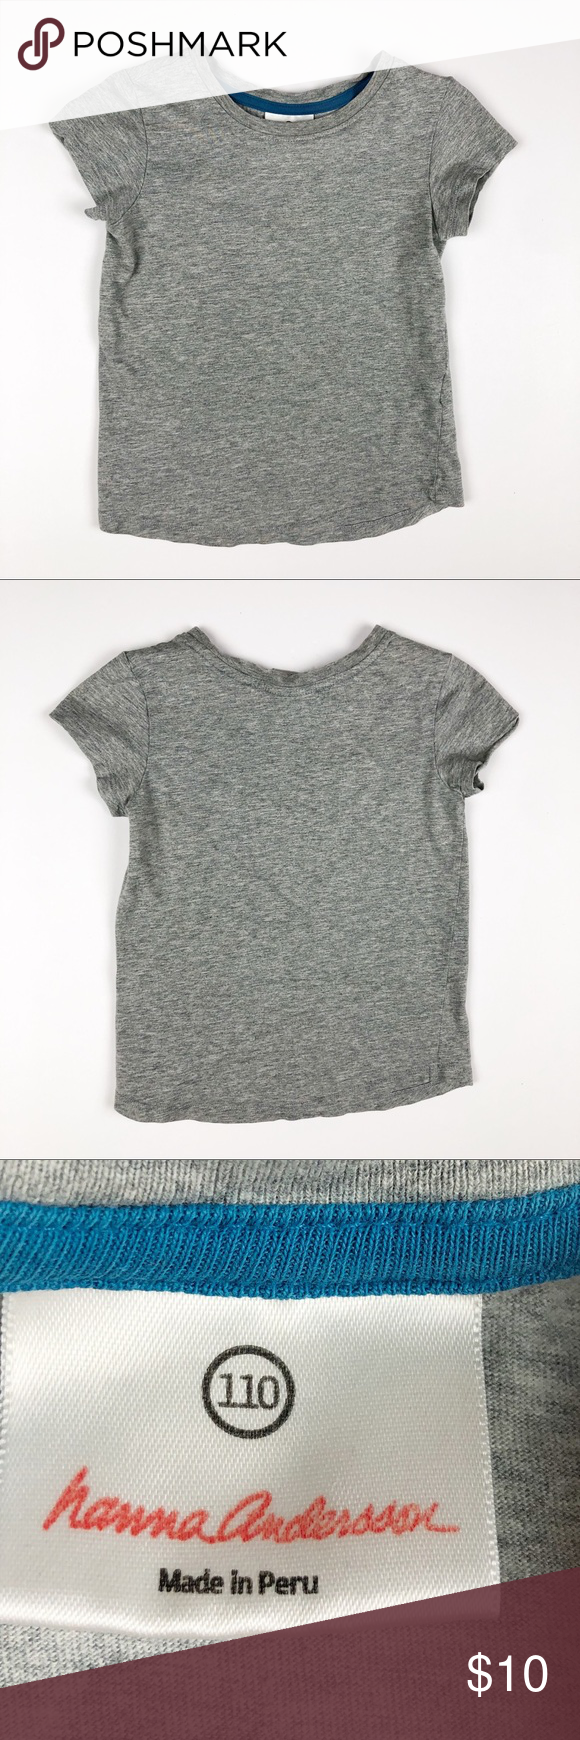 Hanna Andersson Basic Pima Cotton Tee This is a great basic tee that pairs well with many colors, looks, and patterns. It is the perfect staple piece for a little girl's wardrobe. It is in very good condition, just slight signs of wash and wear. Size 110 or 5.  Hanna Andersson Shirts & Tops Tees - Short Sleeve